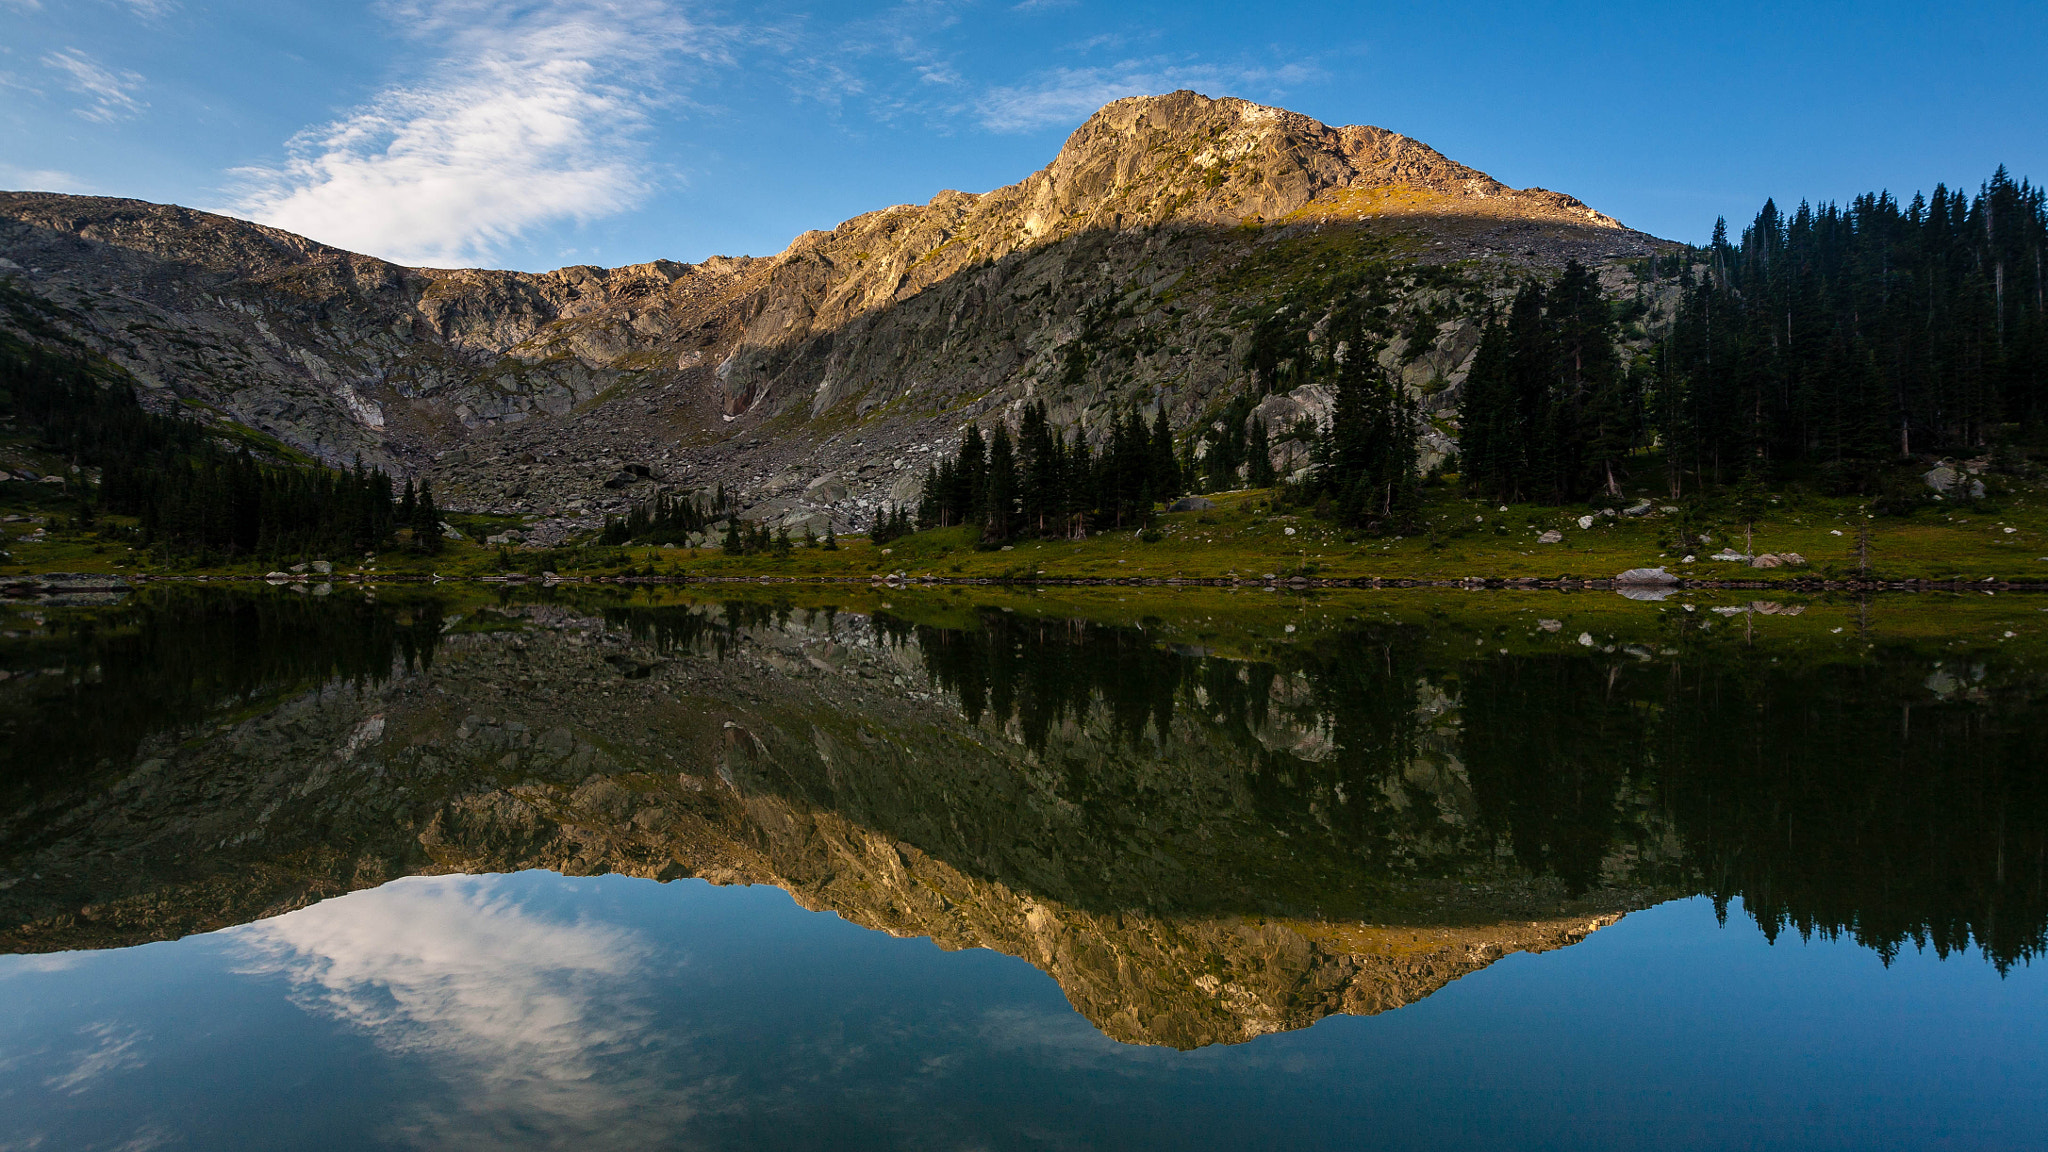 Photograph Summer Lake Reflections by John Stratton on 500px